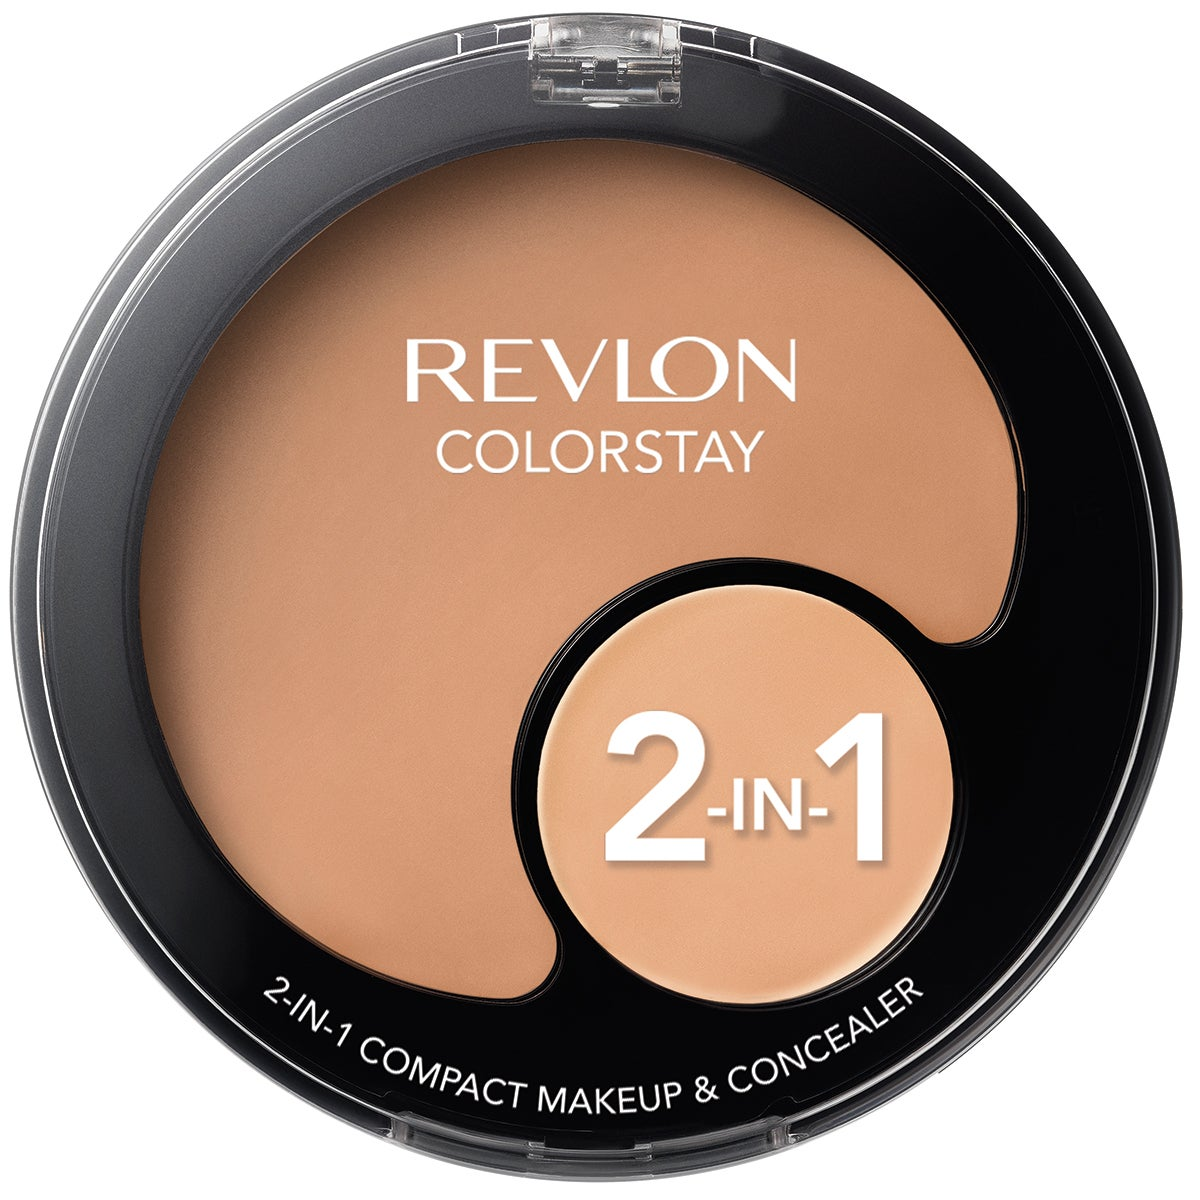 Revlon Colorstay 2-in-1 Foundation & Concealer